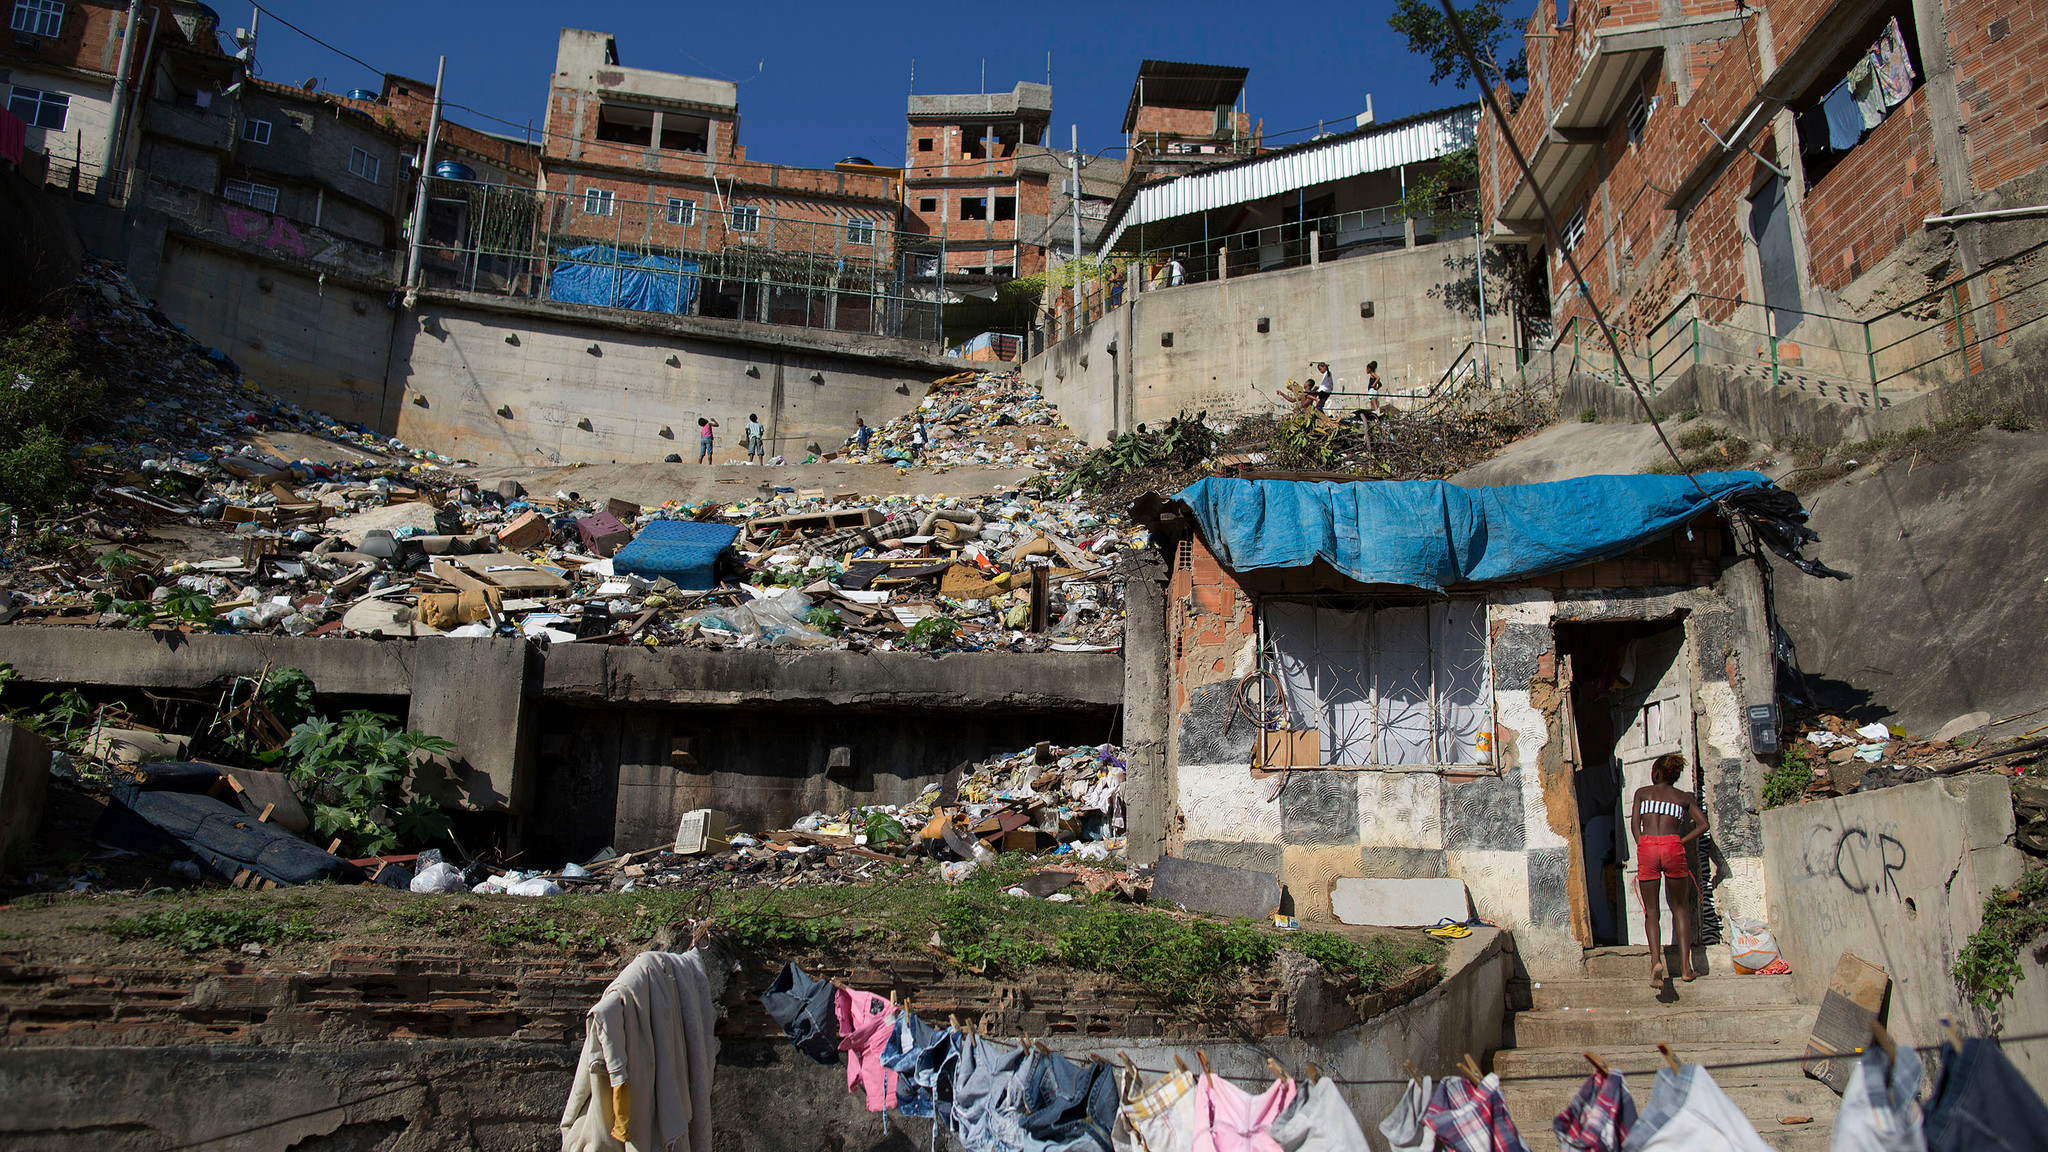 essay on slums Free essay: a ethnocentrism - the use of one's own culture as a yardstick for judging the ways of other individuals or societies, generally leading to a.